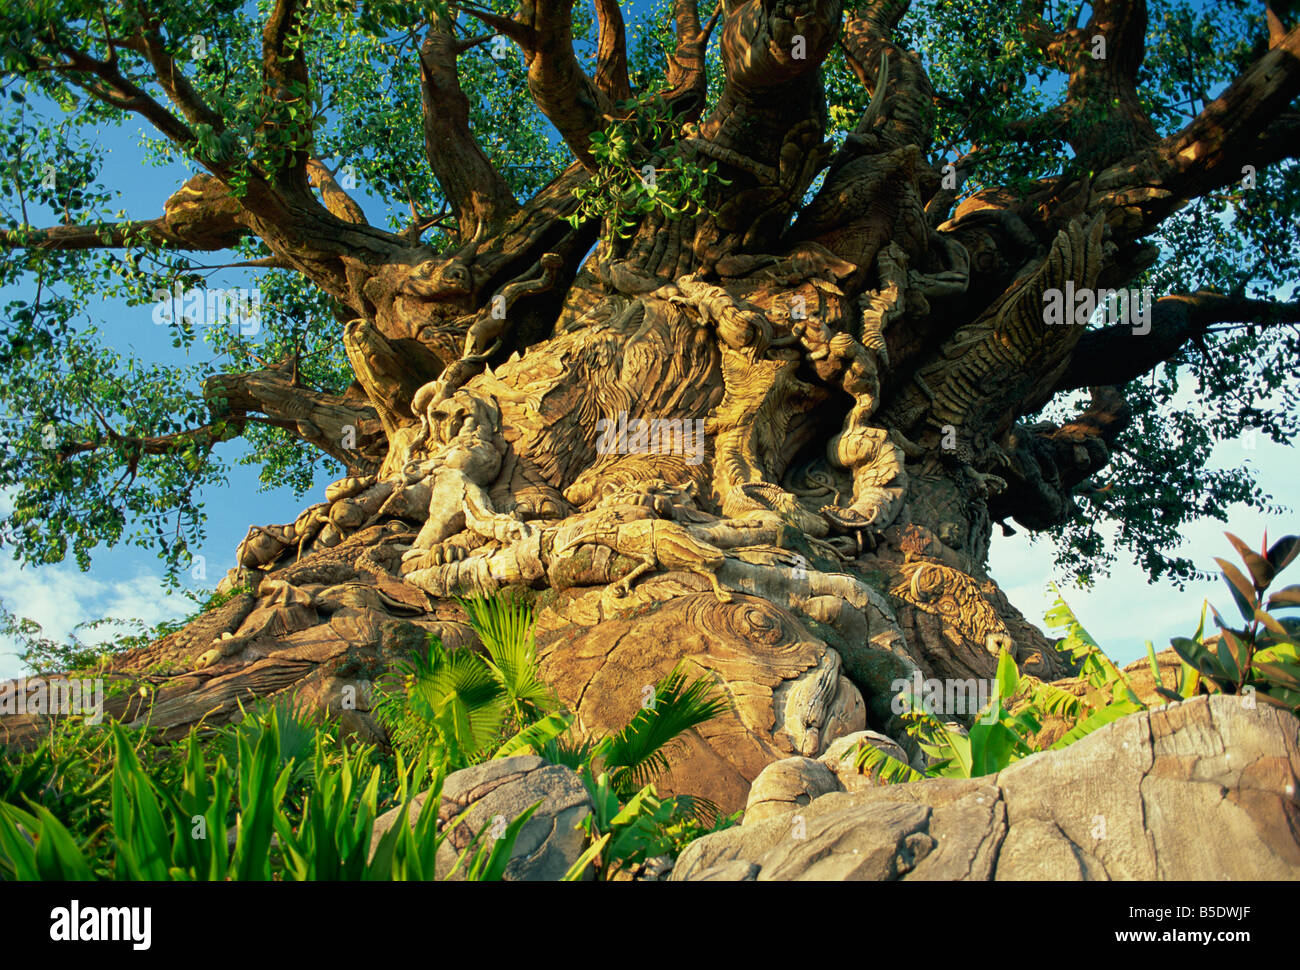 The Tree of Life, Animal Kingdom, Disneyworld, Orlando, Florida, USA, North America - Stock Image